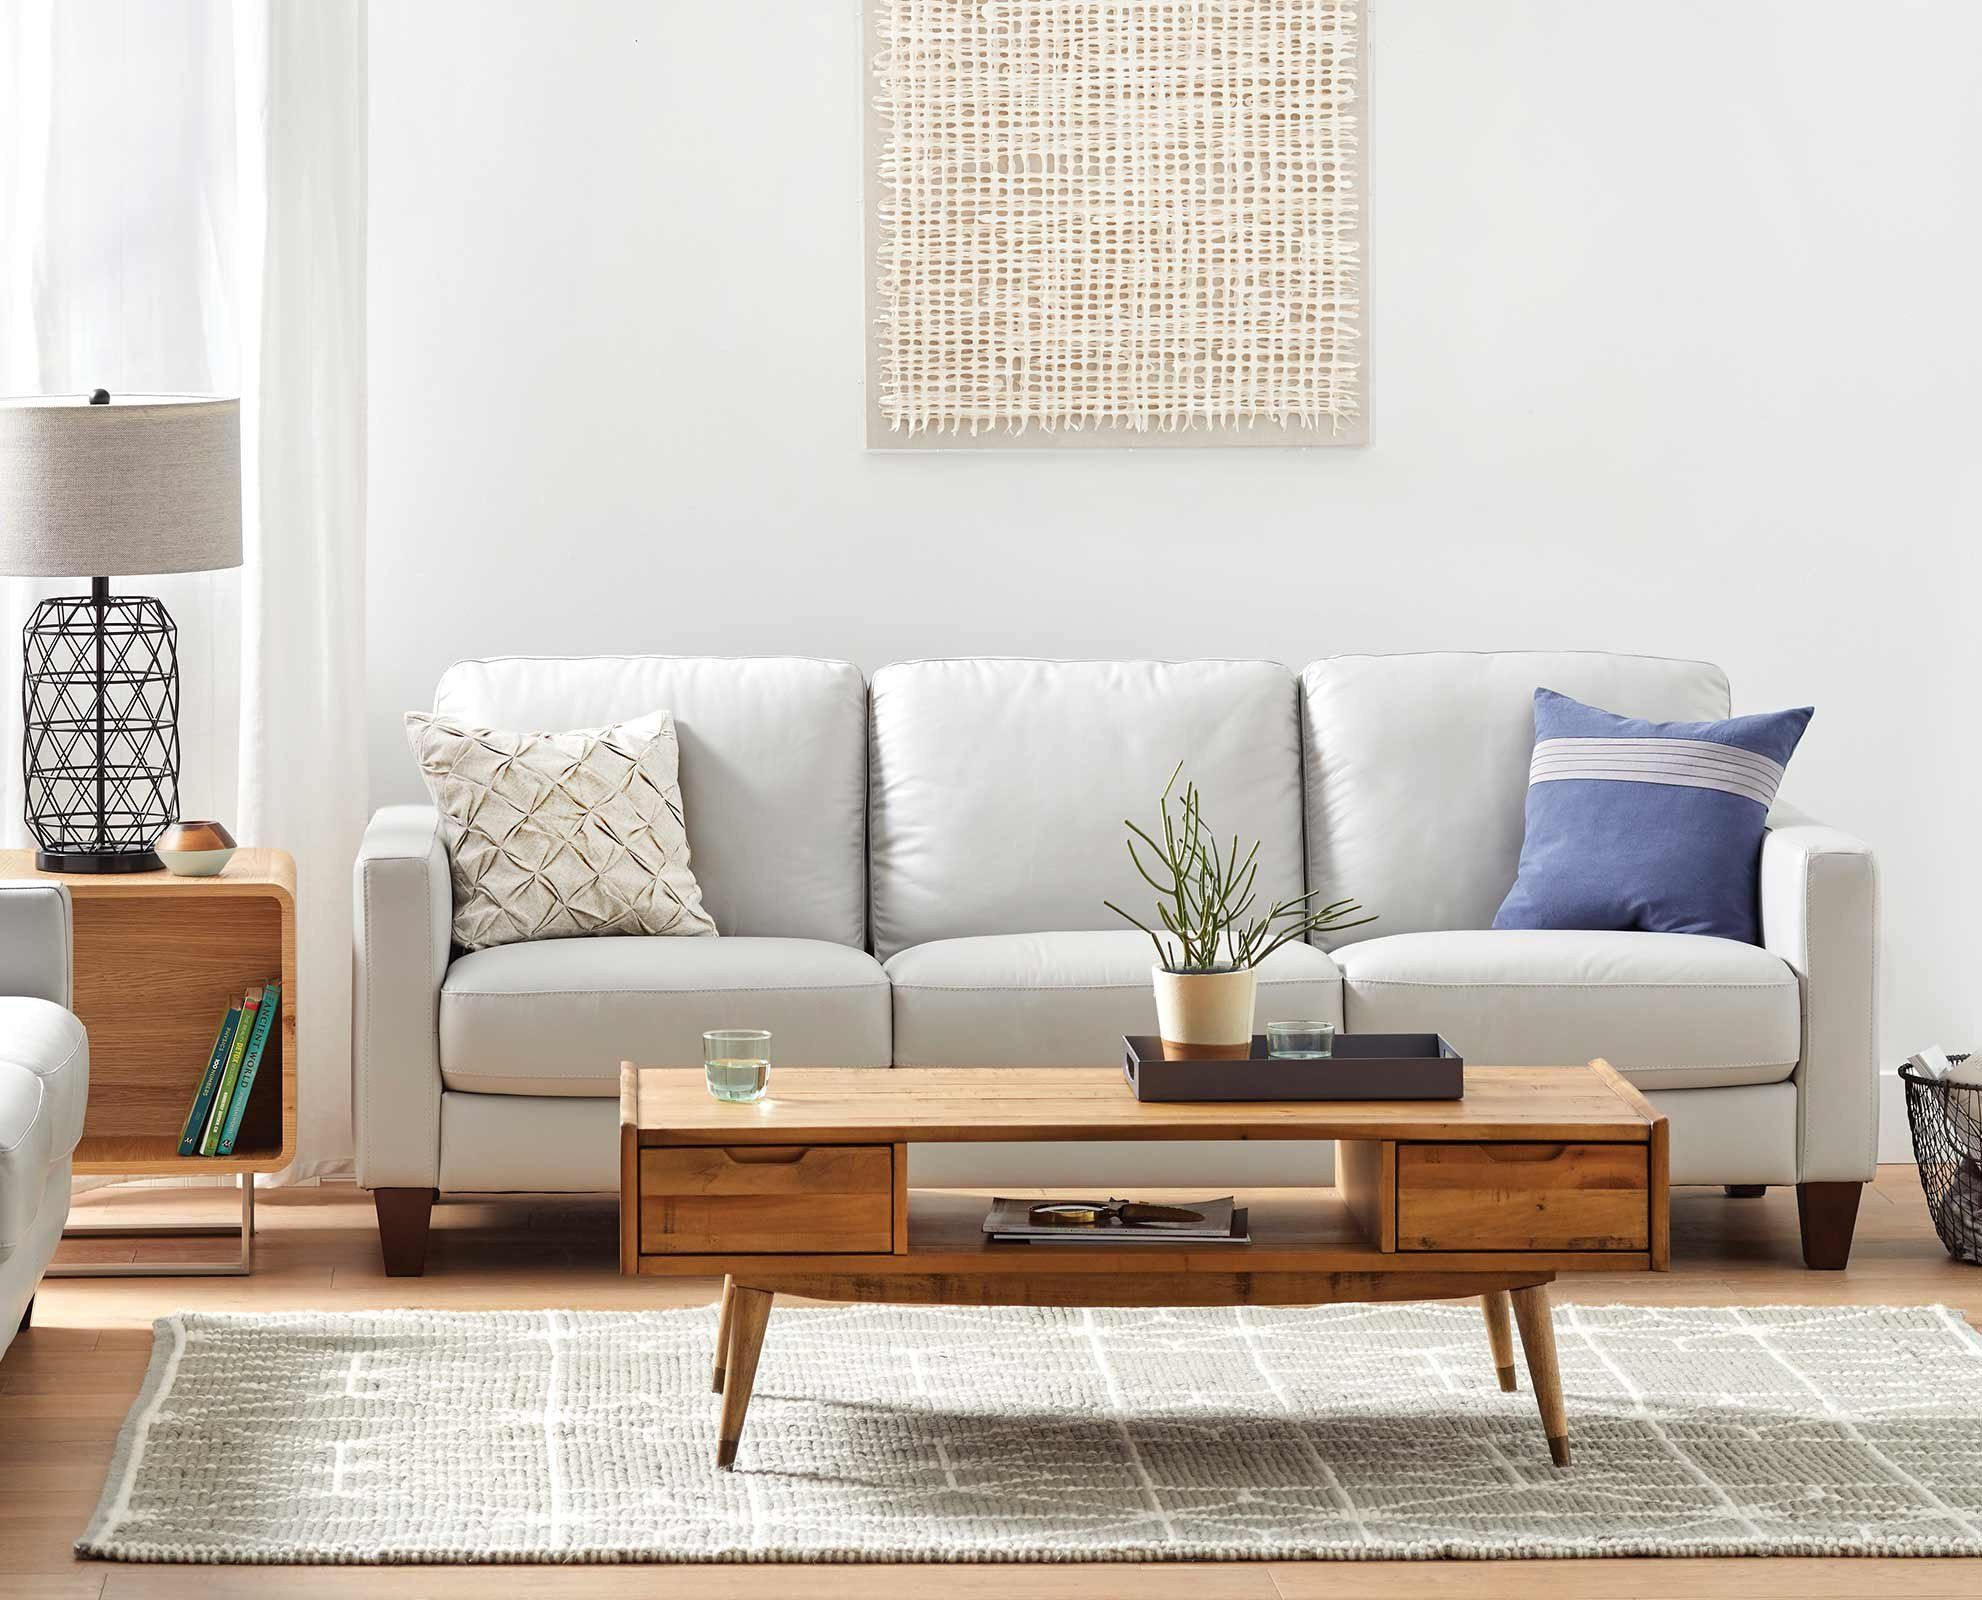 Dania Furniture Pavel Sofa Use Ac10 At Checkout To Receive 10 Off